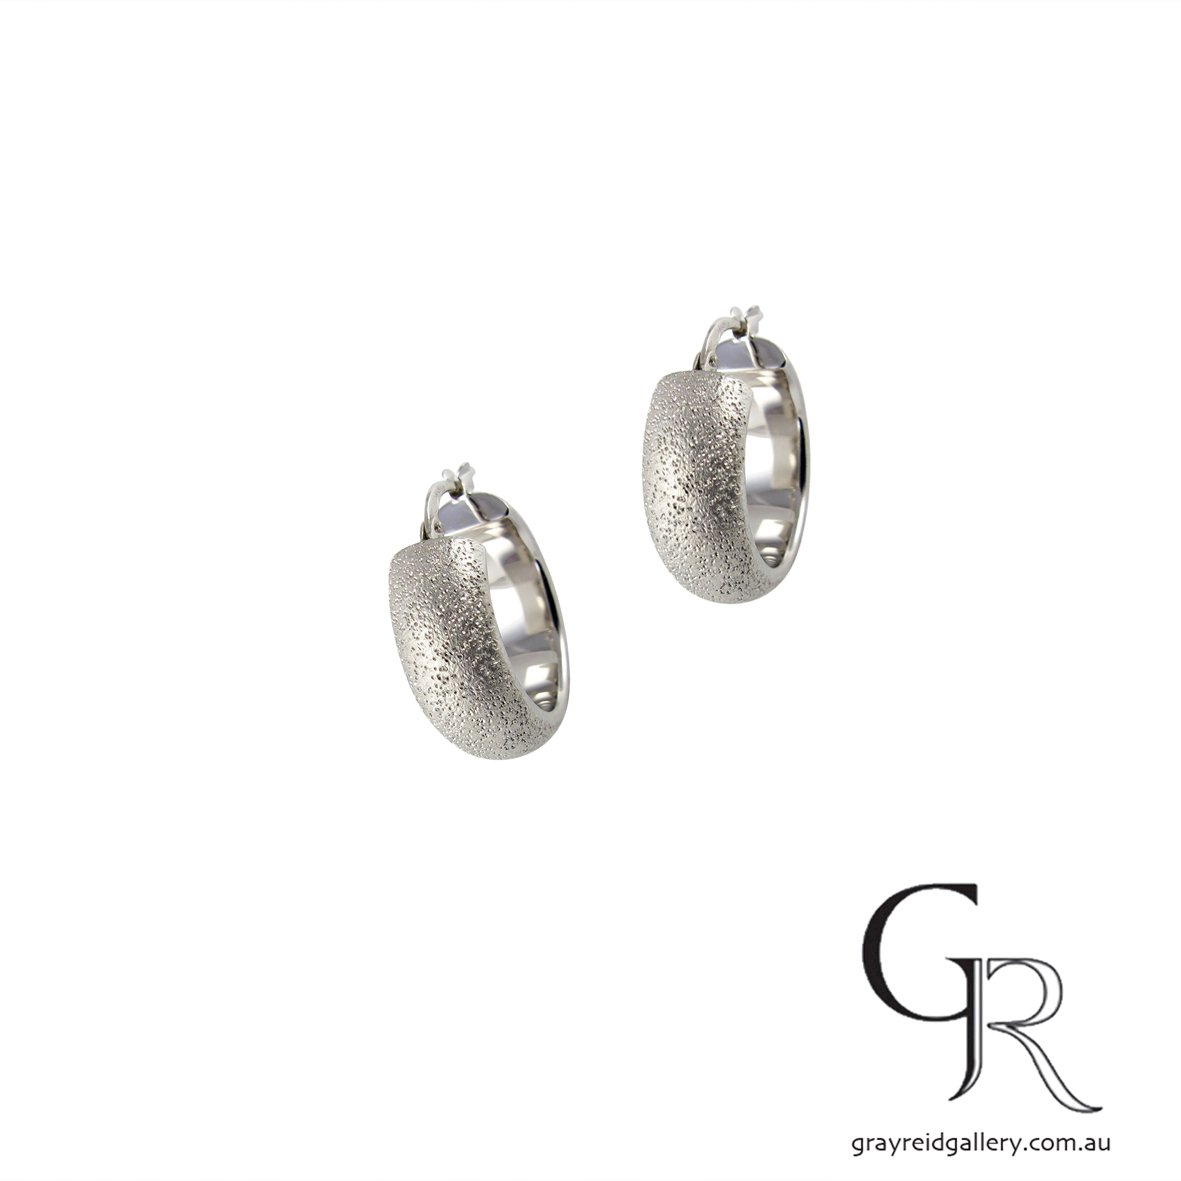 Melbourne vintage earrings Gem set diamond Gray Reid Gallery-02-08 14.34.56.jpg